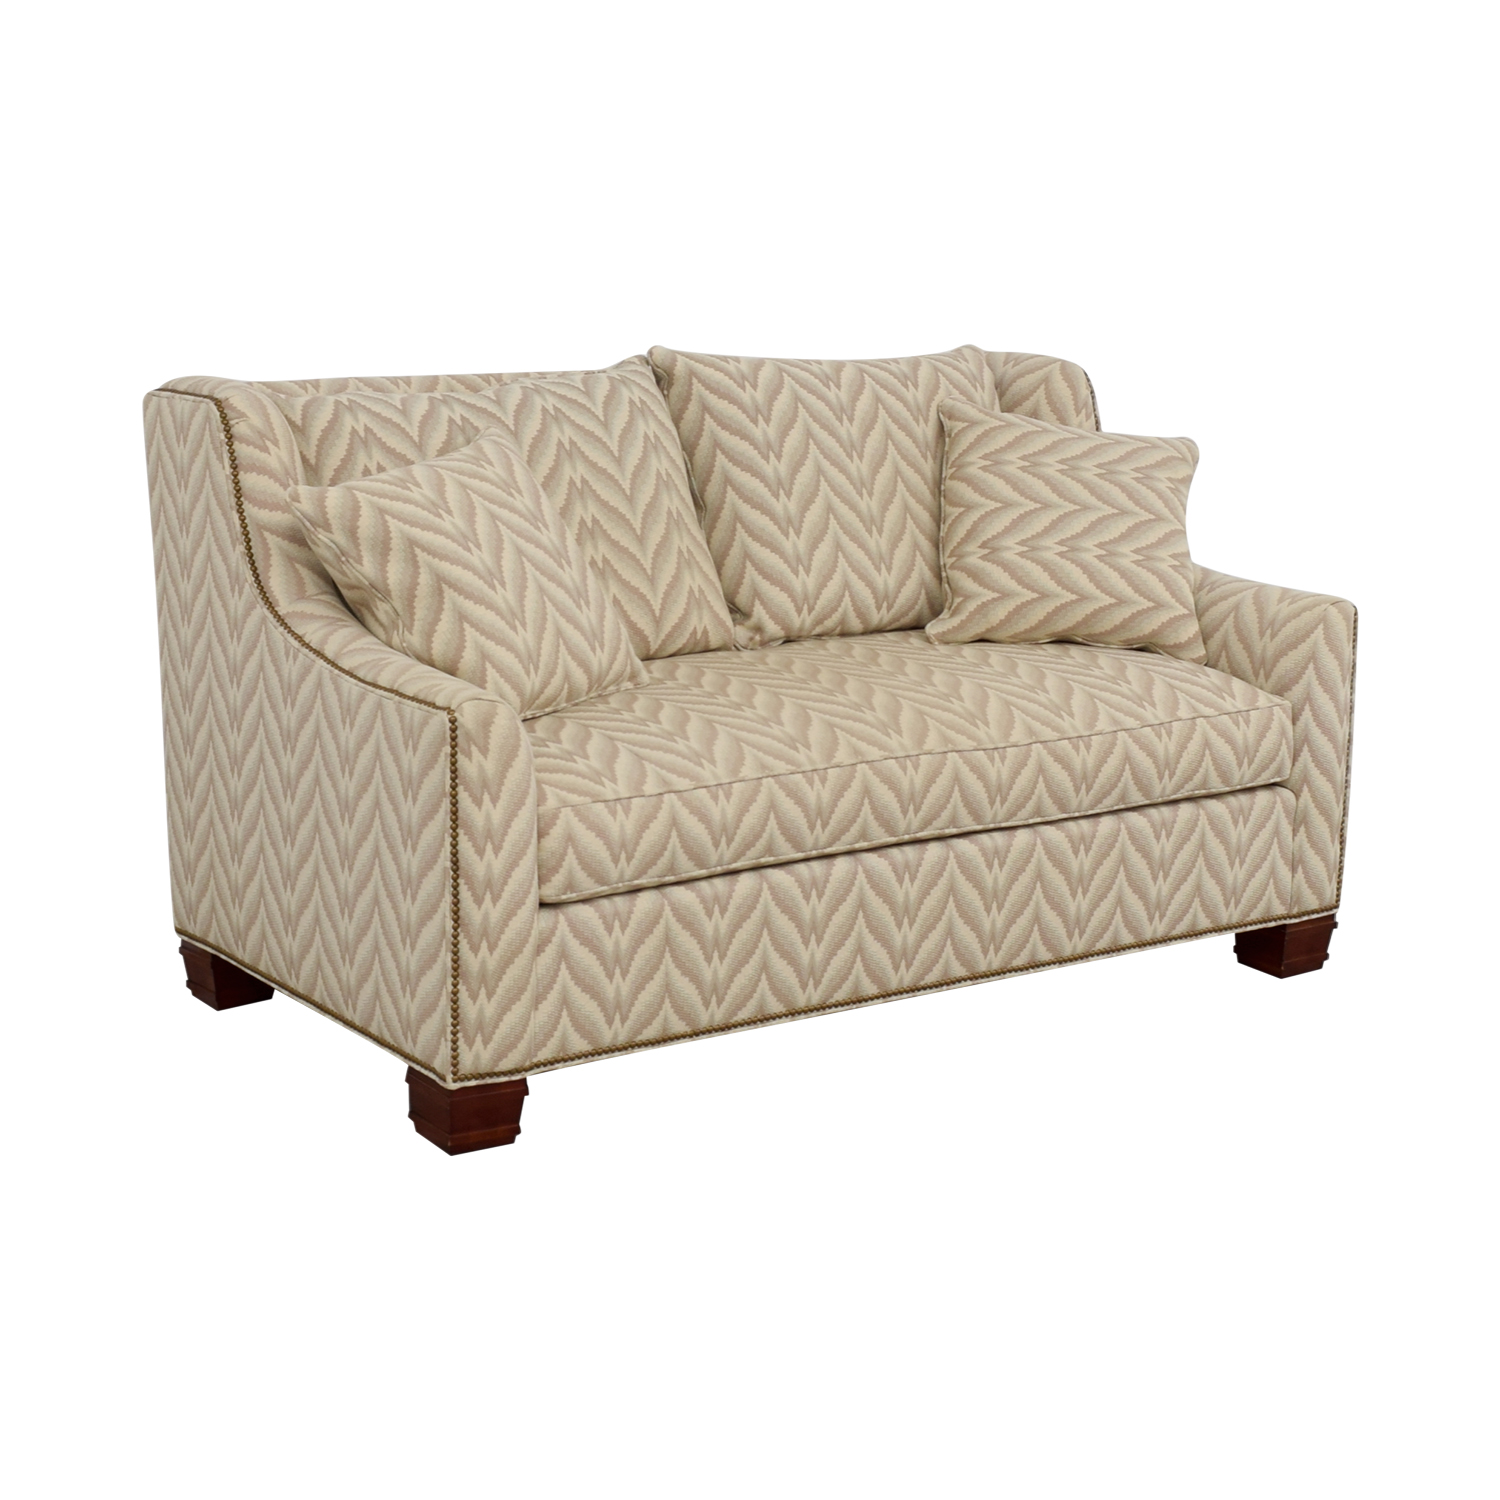 shop The Hickory Chair Furniture Co. Chevron Nailhead Loveseat The Hickory Chair Furniture Co.